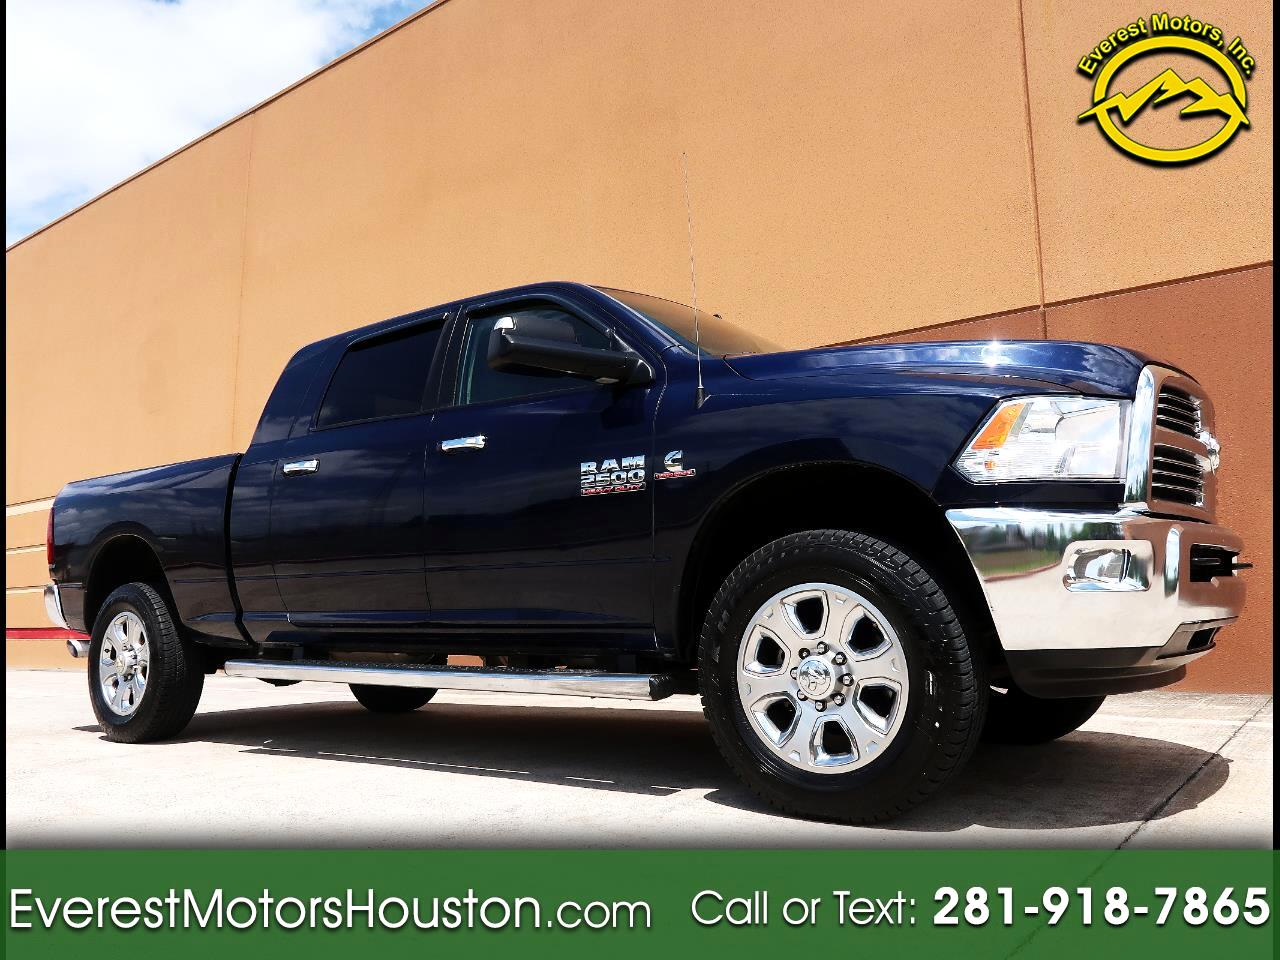 2015 Dodge Ram 2500 4WD Mega Cab Short Bed Lone Star Edition